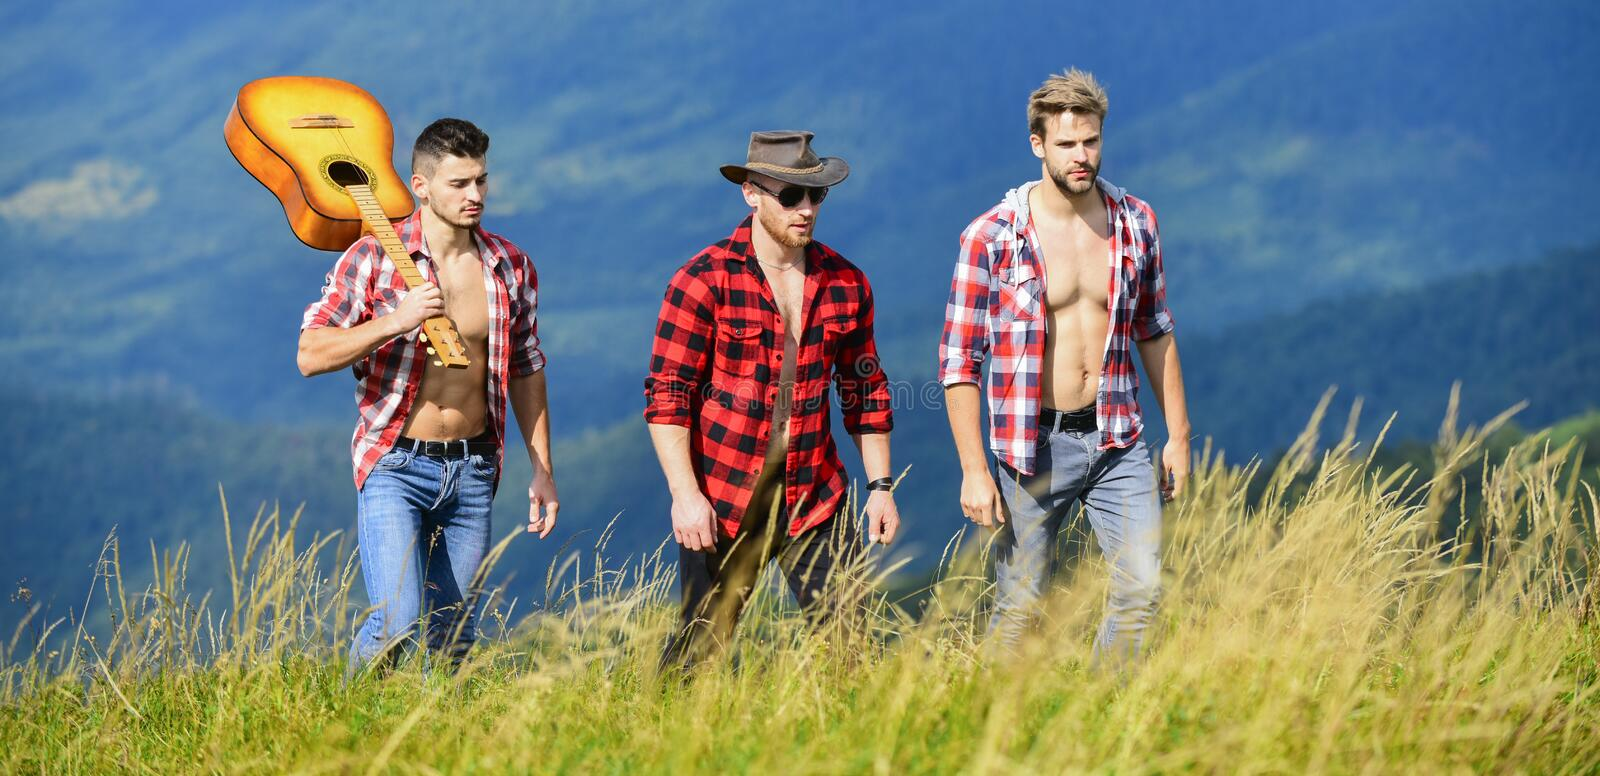 Tourists hiking concept. Hiking with friends. Enjoying freedom together. Long route. Group of young people in checkered. Shirts walking together on top of stock images